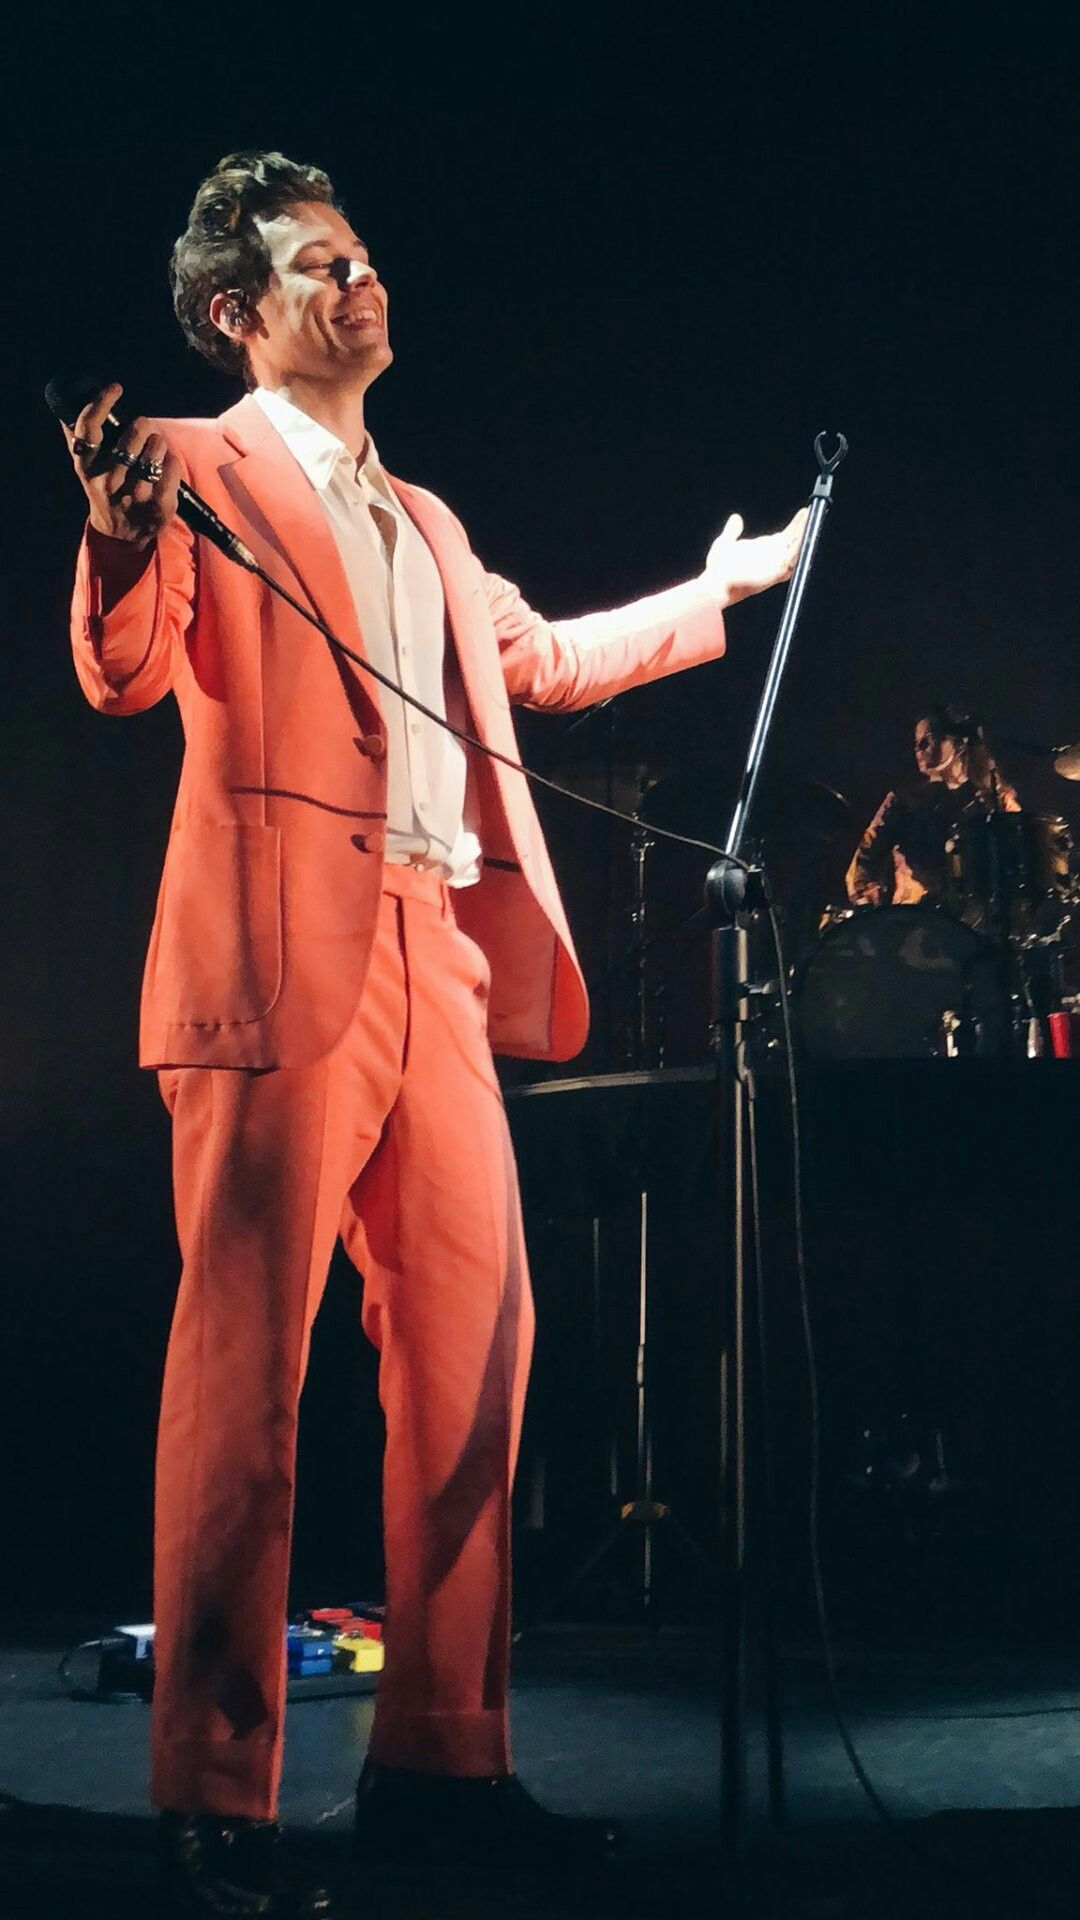 H in a salmon colored suit atrizes looks